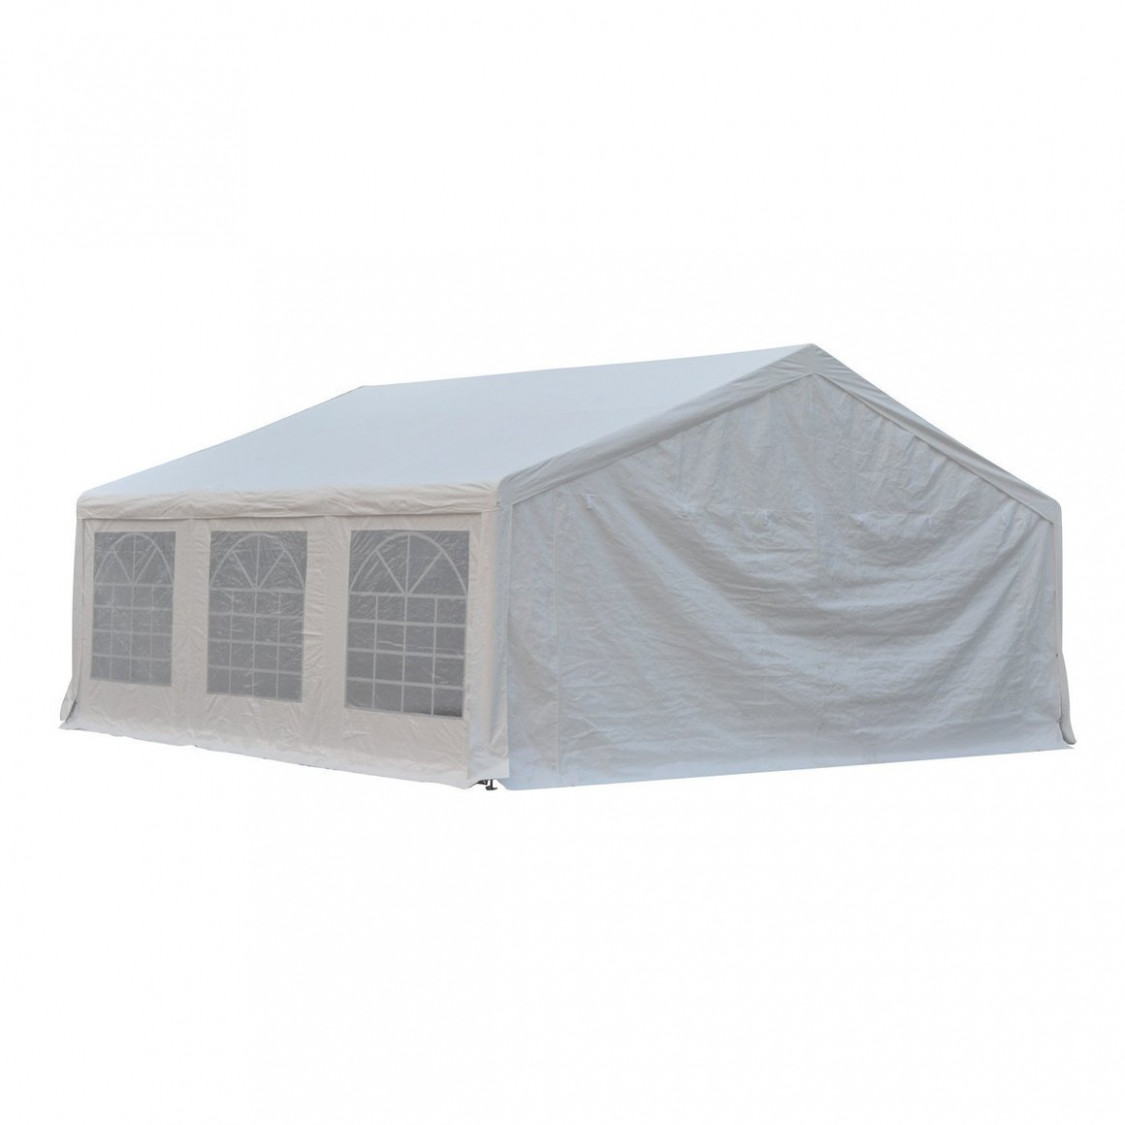 Outsunny HEAVY DUTY 13x13FT Large Carport Canopy Wedding Event Party ..